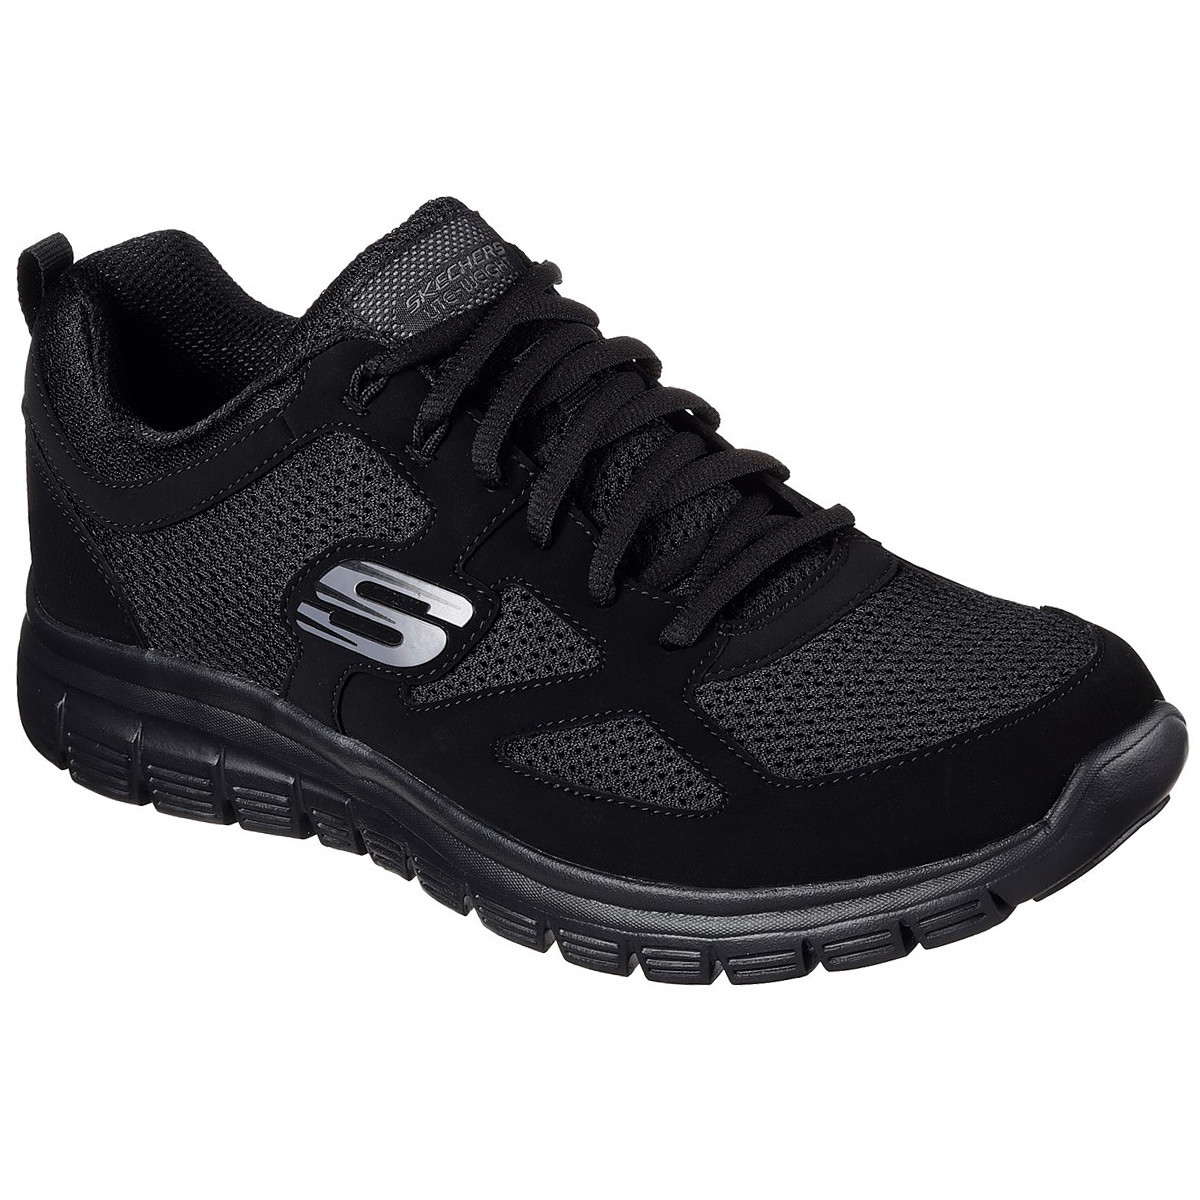 meet 42fe1 7267a Skechers Mens 2019 Burns Agoura Trainers